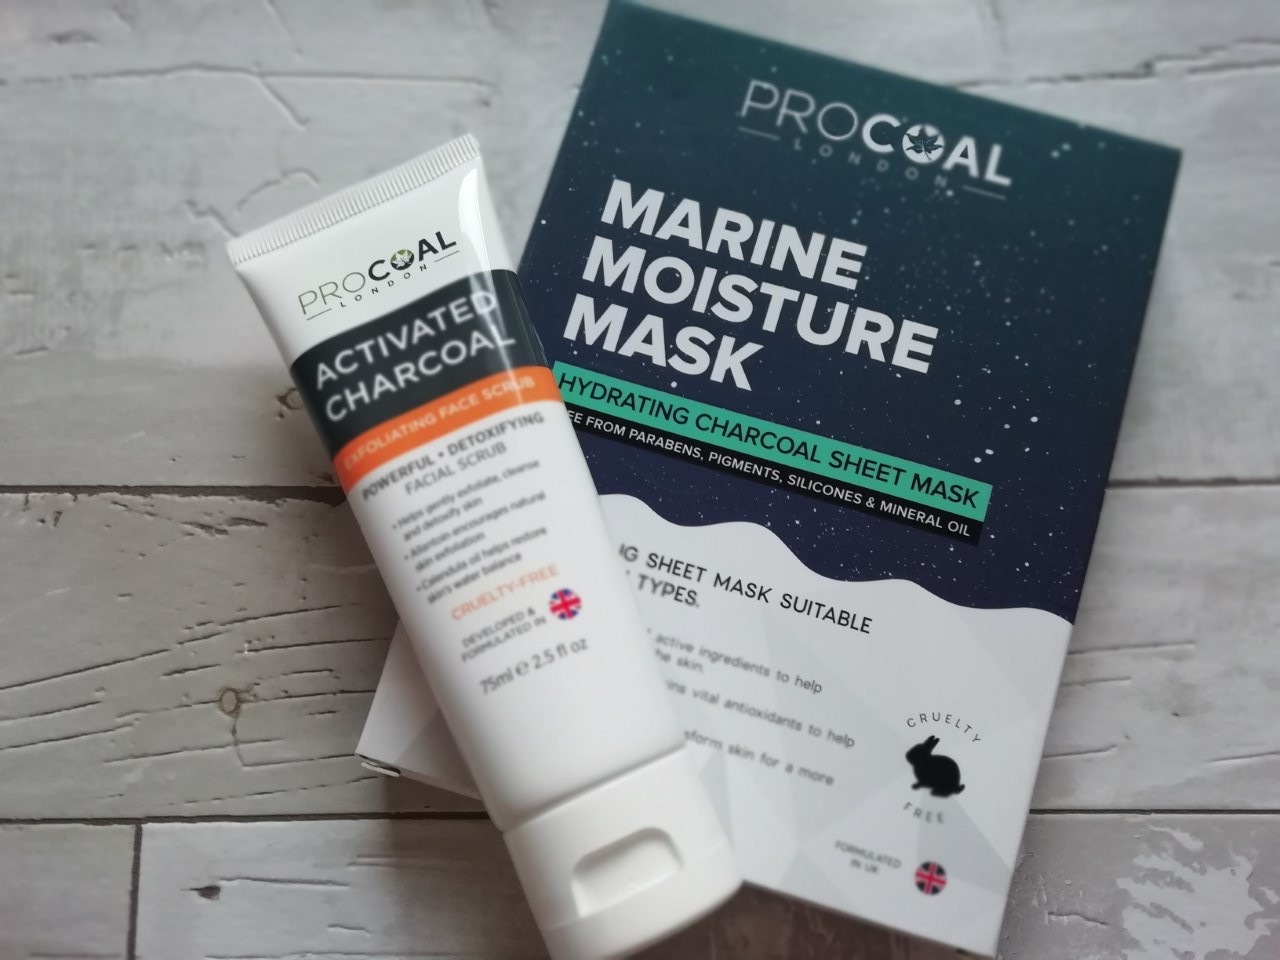 Procoal Scrub and Mask